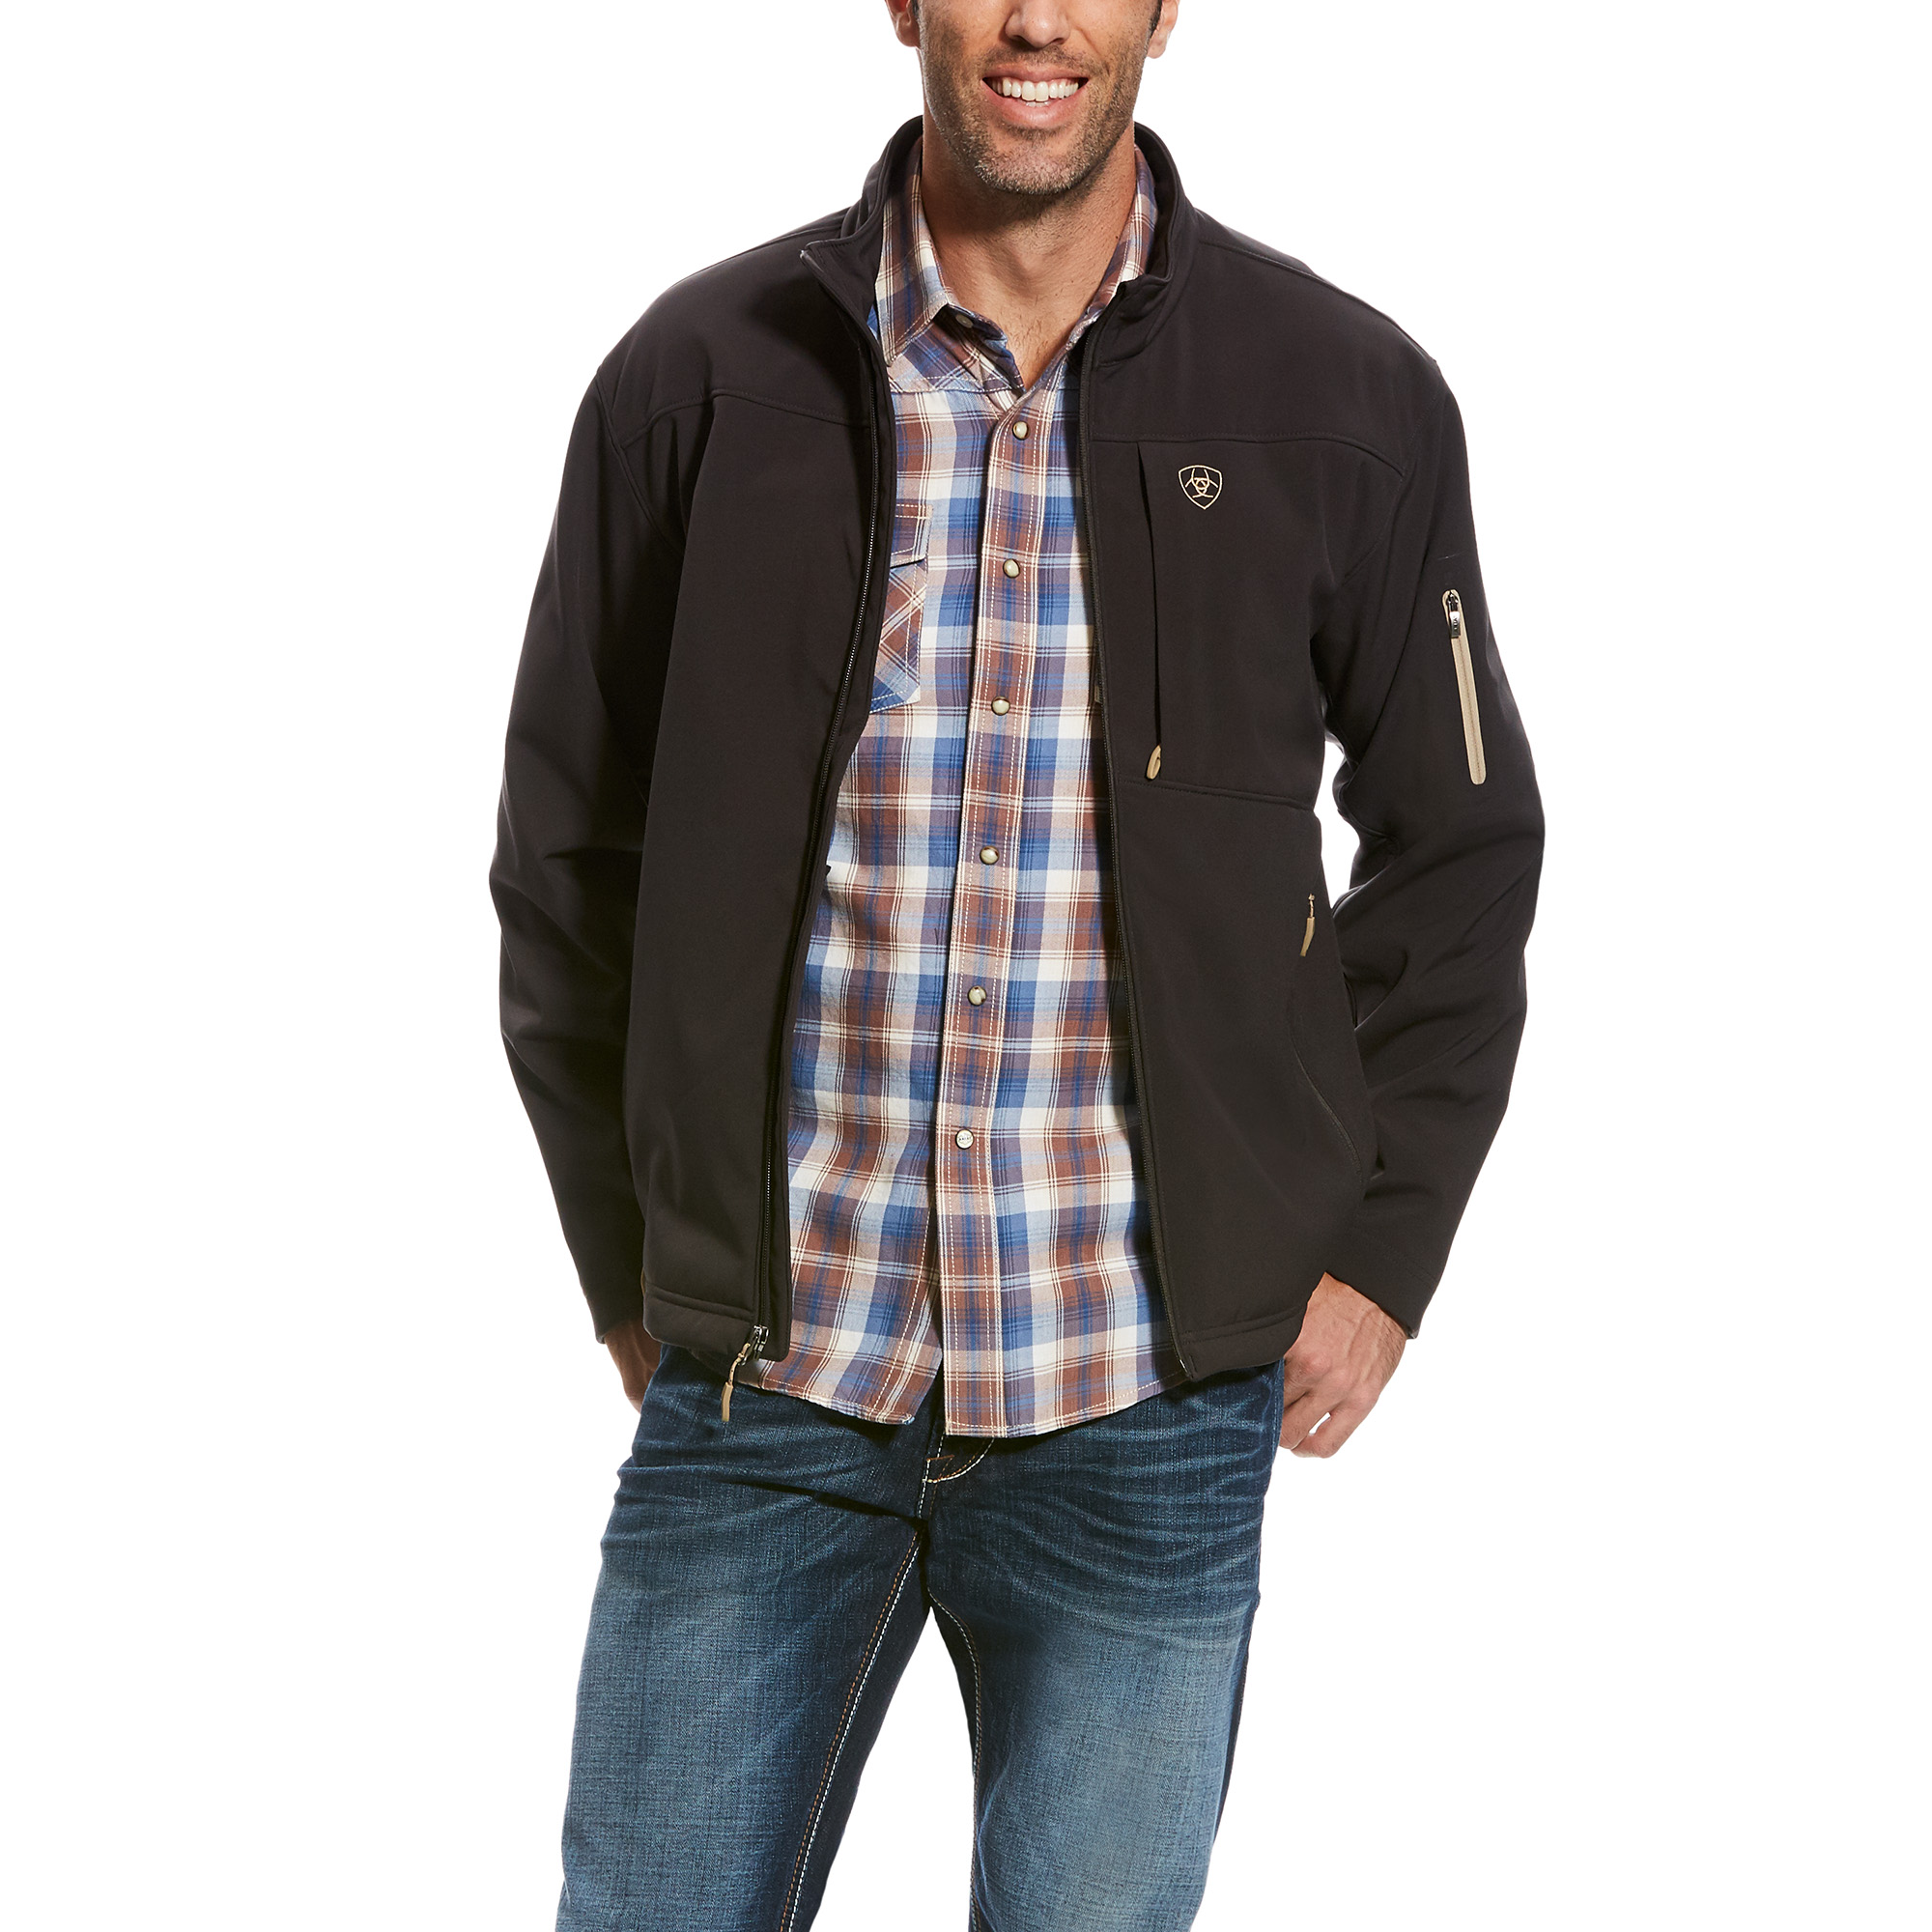 Men's Vernon 2.0 Softshell Jacket from Ariat